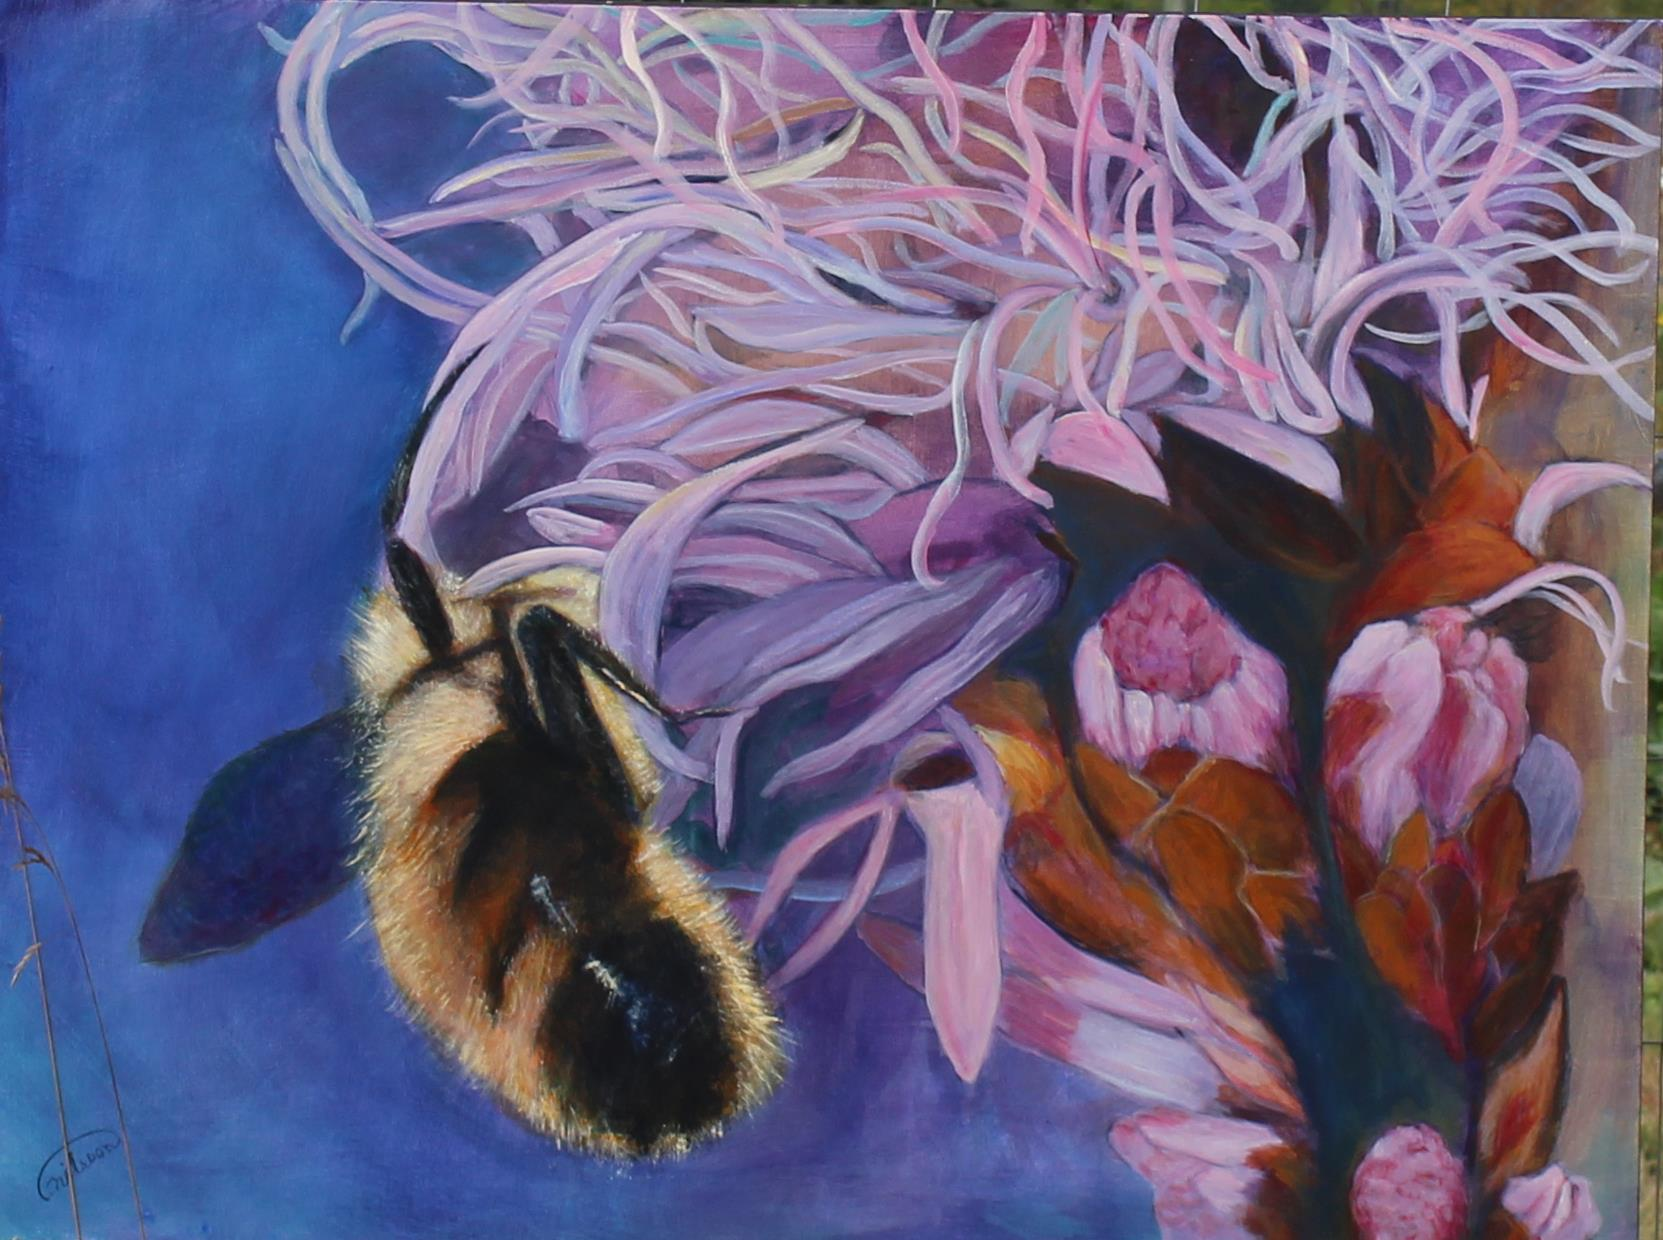 Busy Bee - Christina Nilsson